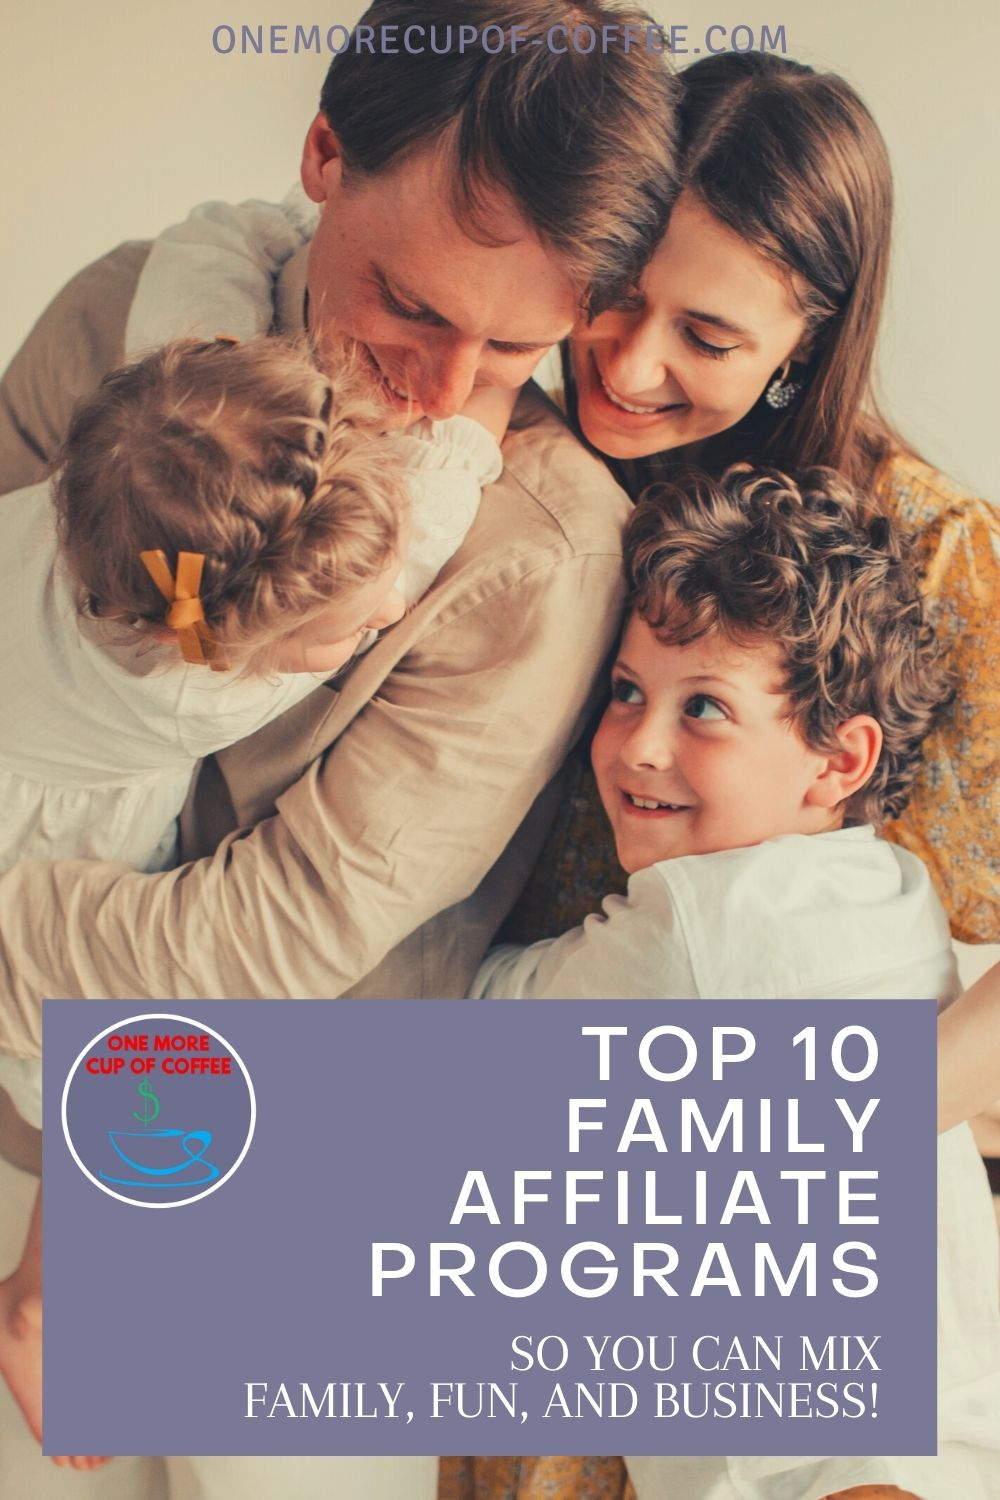 """closeup image of mom and dad and young son and daughter, in an embrace; with text overlay """"Top 10 Family Affiliate Programs So You Can Mix Family, Fun, And Business!"""""""